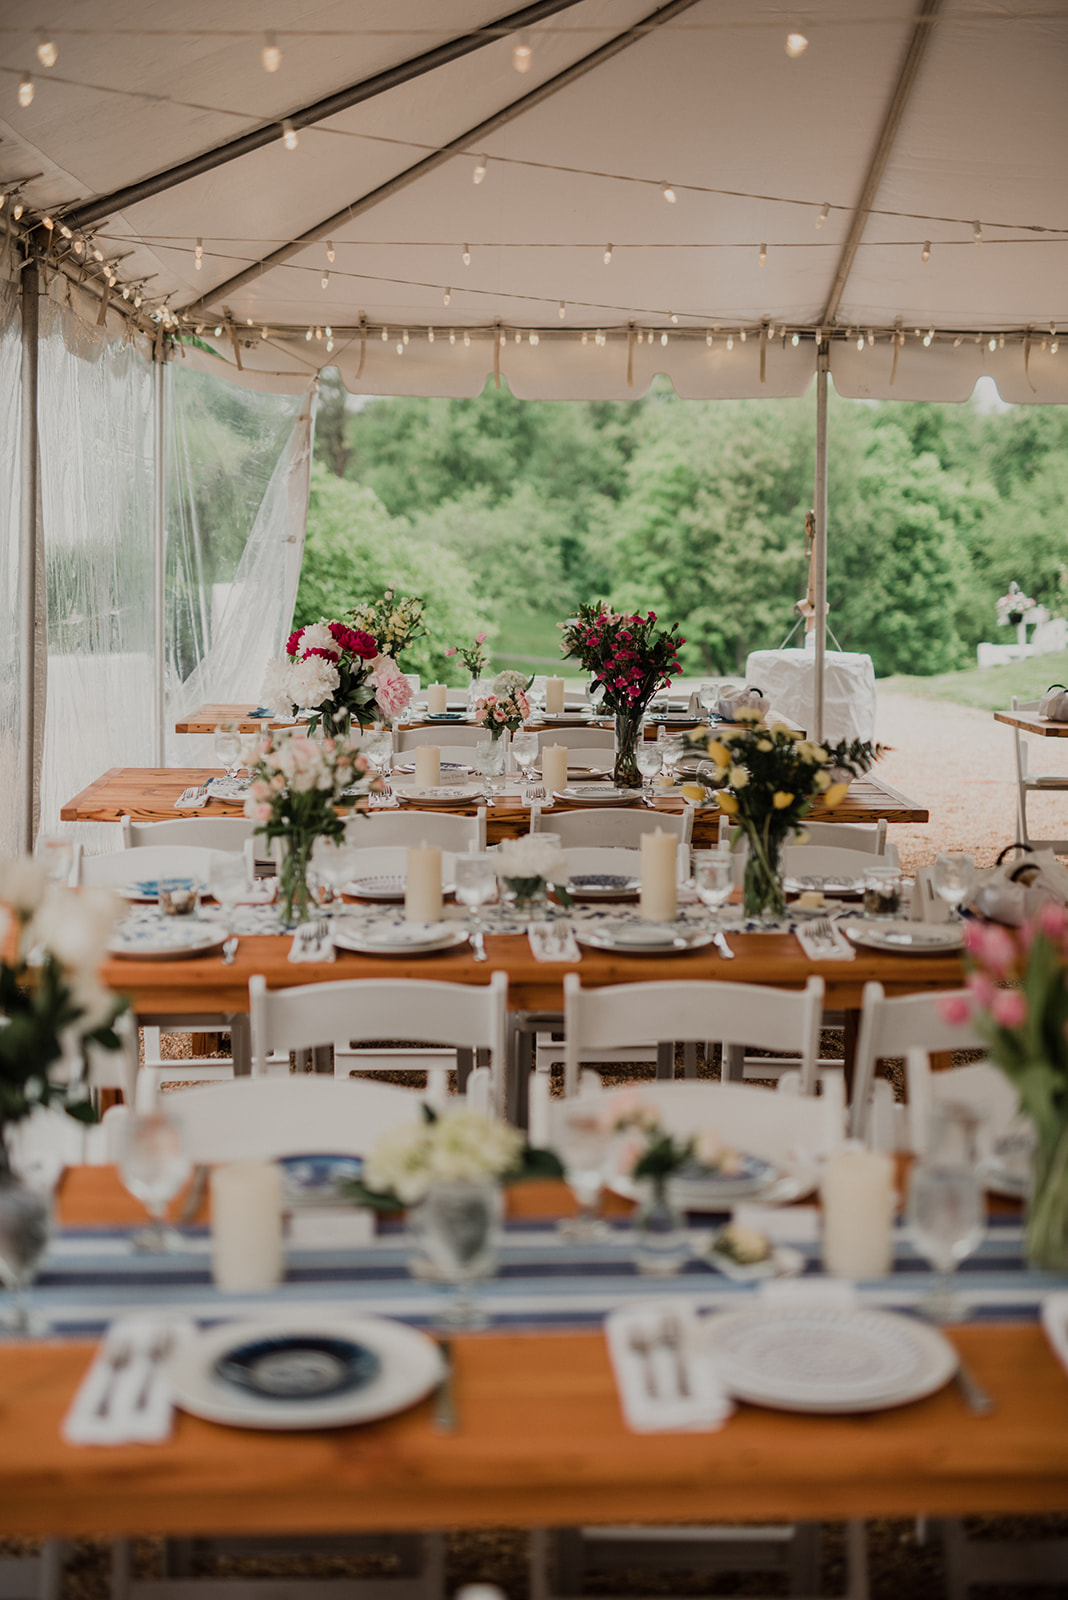 Farm tables are adorned with wildflower bouquets and blue ceramic plates at a wedding reception at Blue Hill Farm in Waterford, VA.